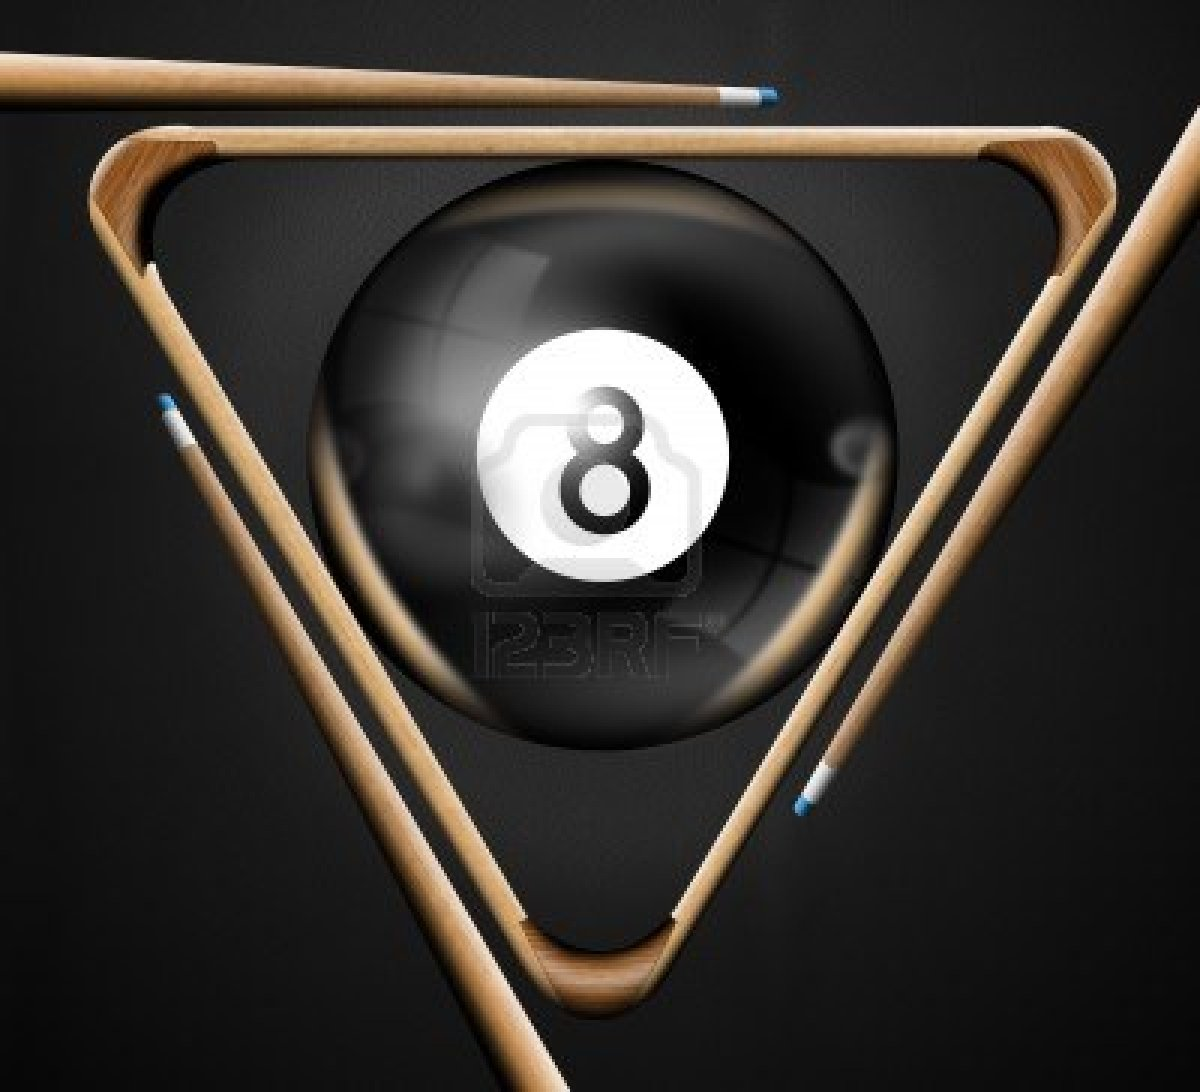 The Pool Table Pro Preowned Services - Online pool table sales